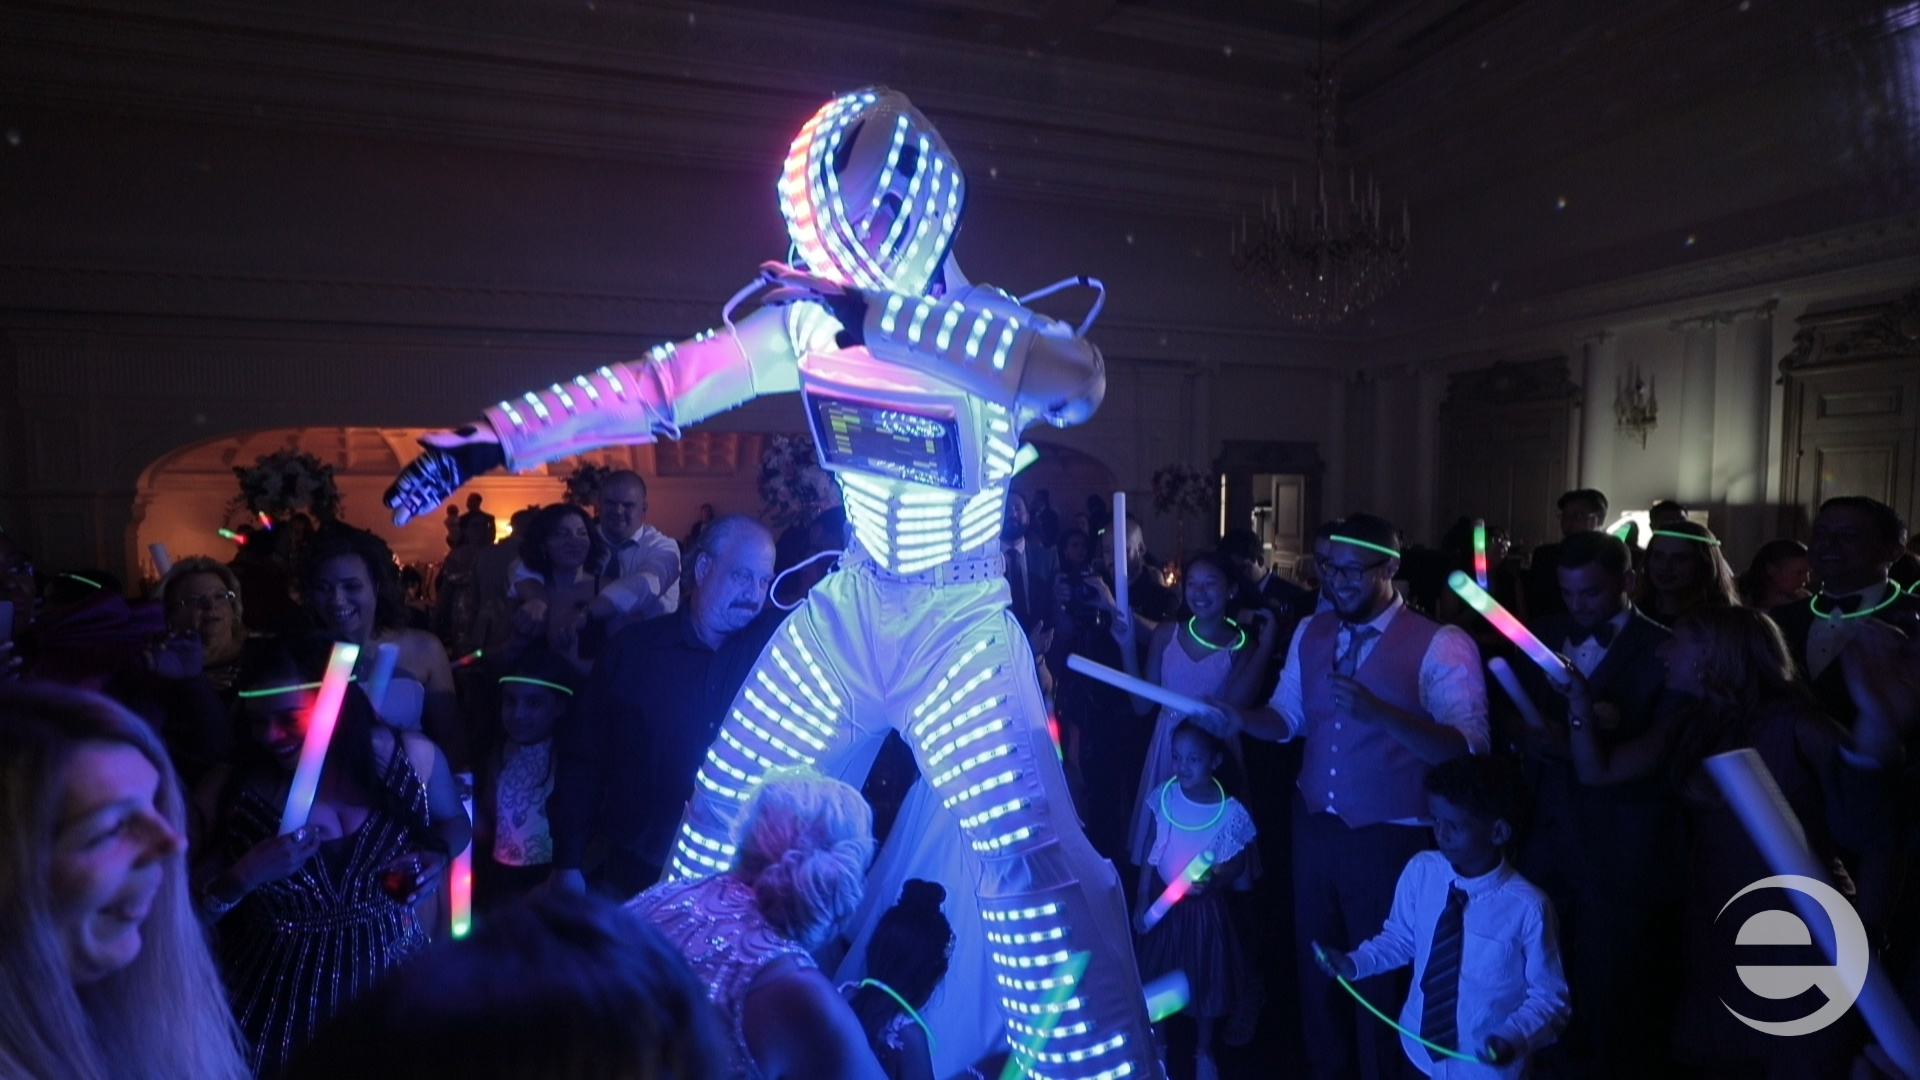 LED robot dancing with guests at Park Chateau, NJ